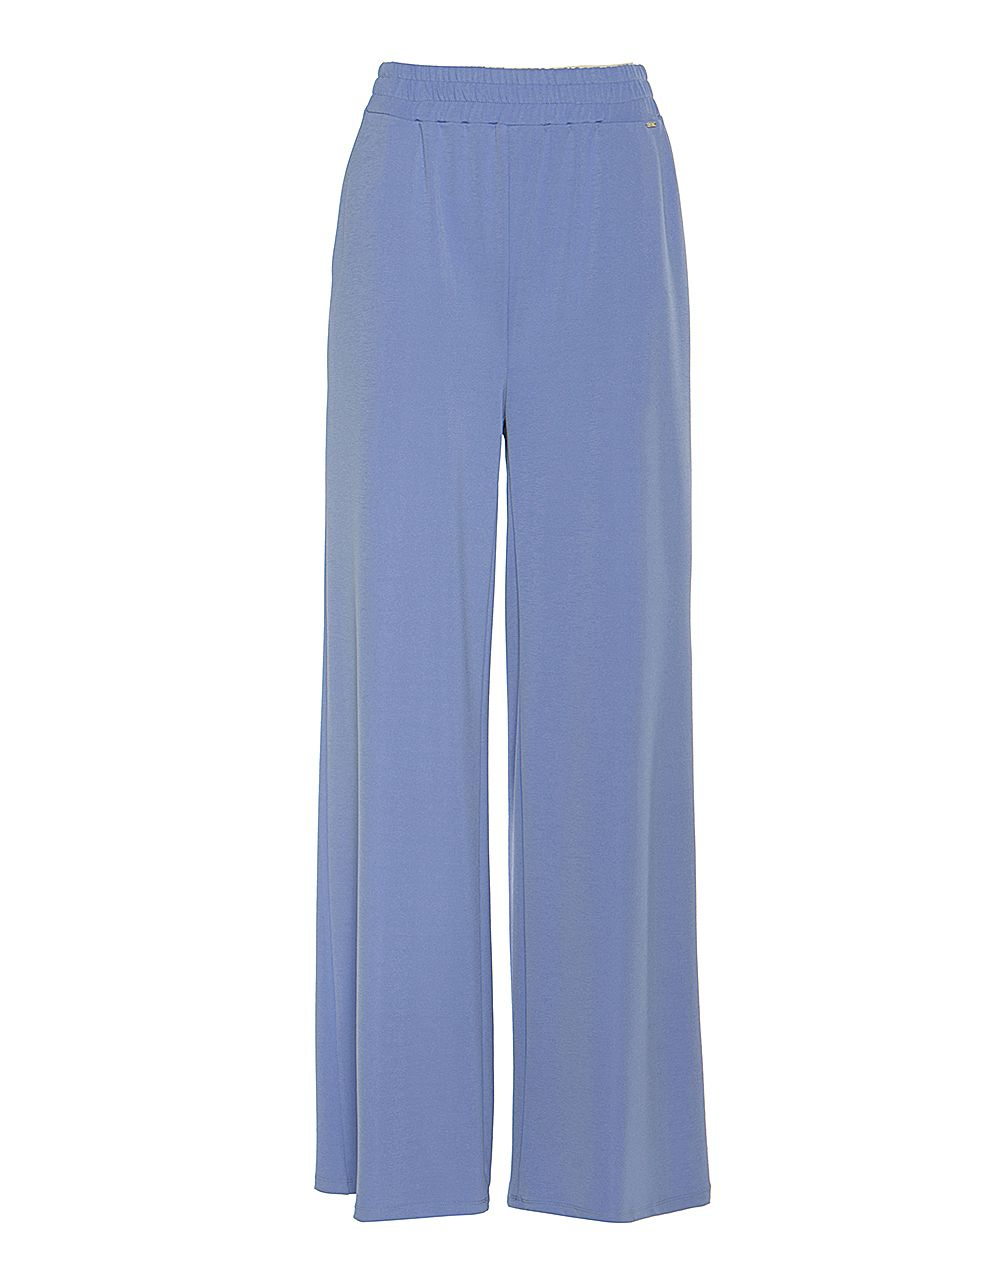 HIGH WAIST ELASTICATED TROUSERS